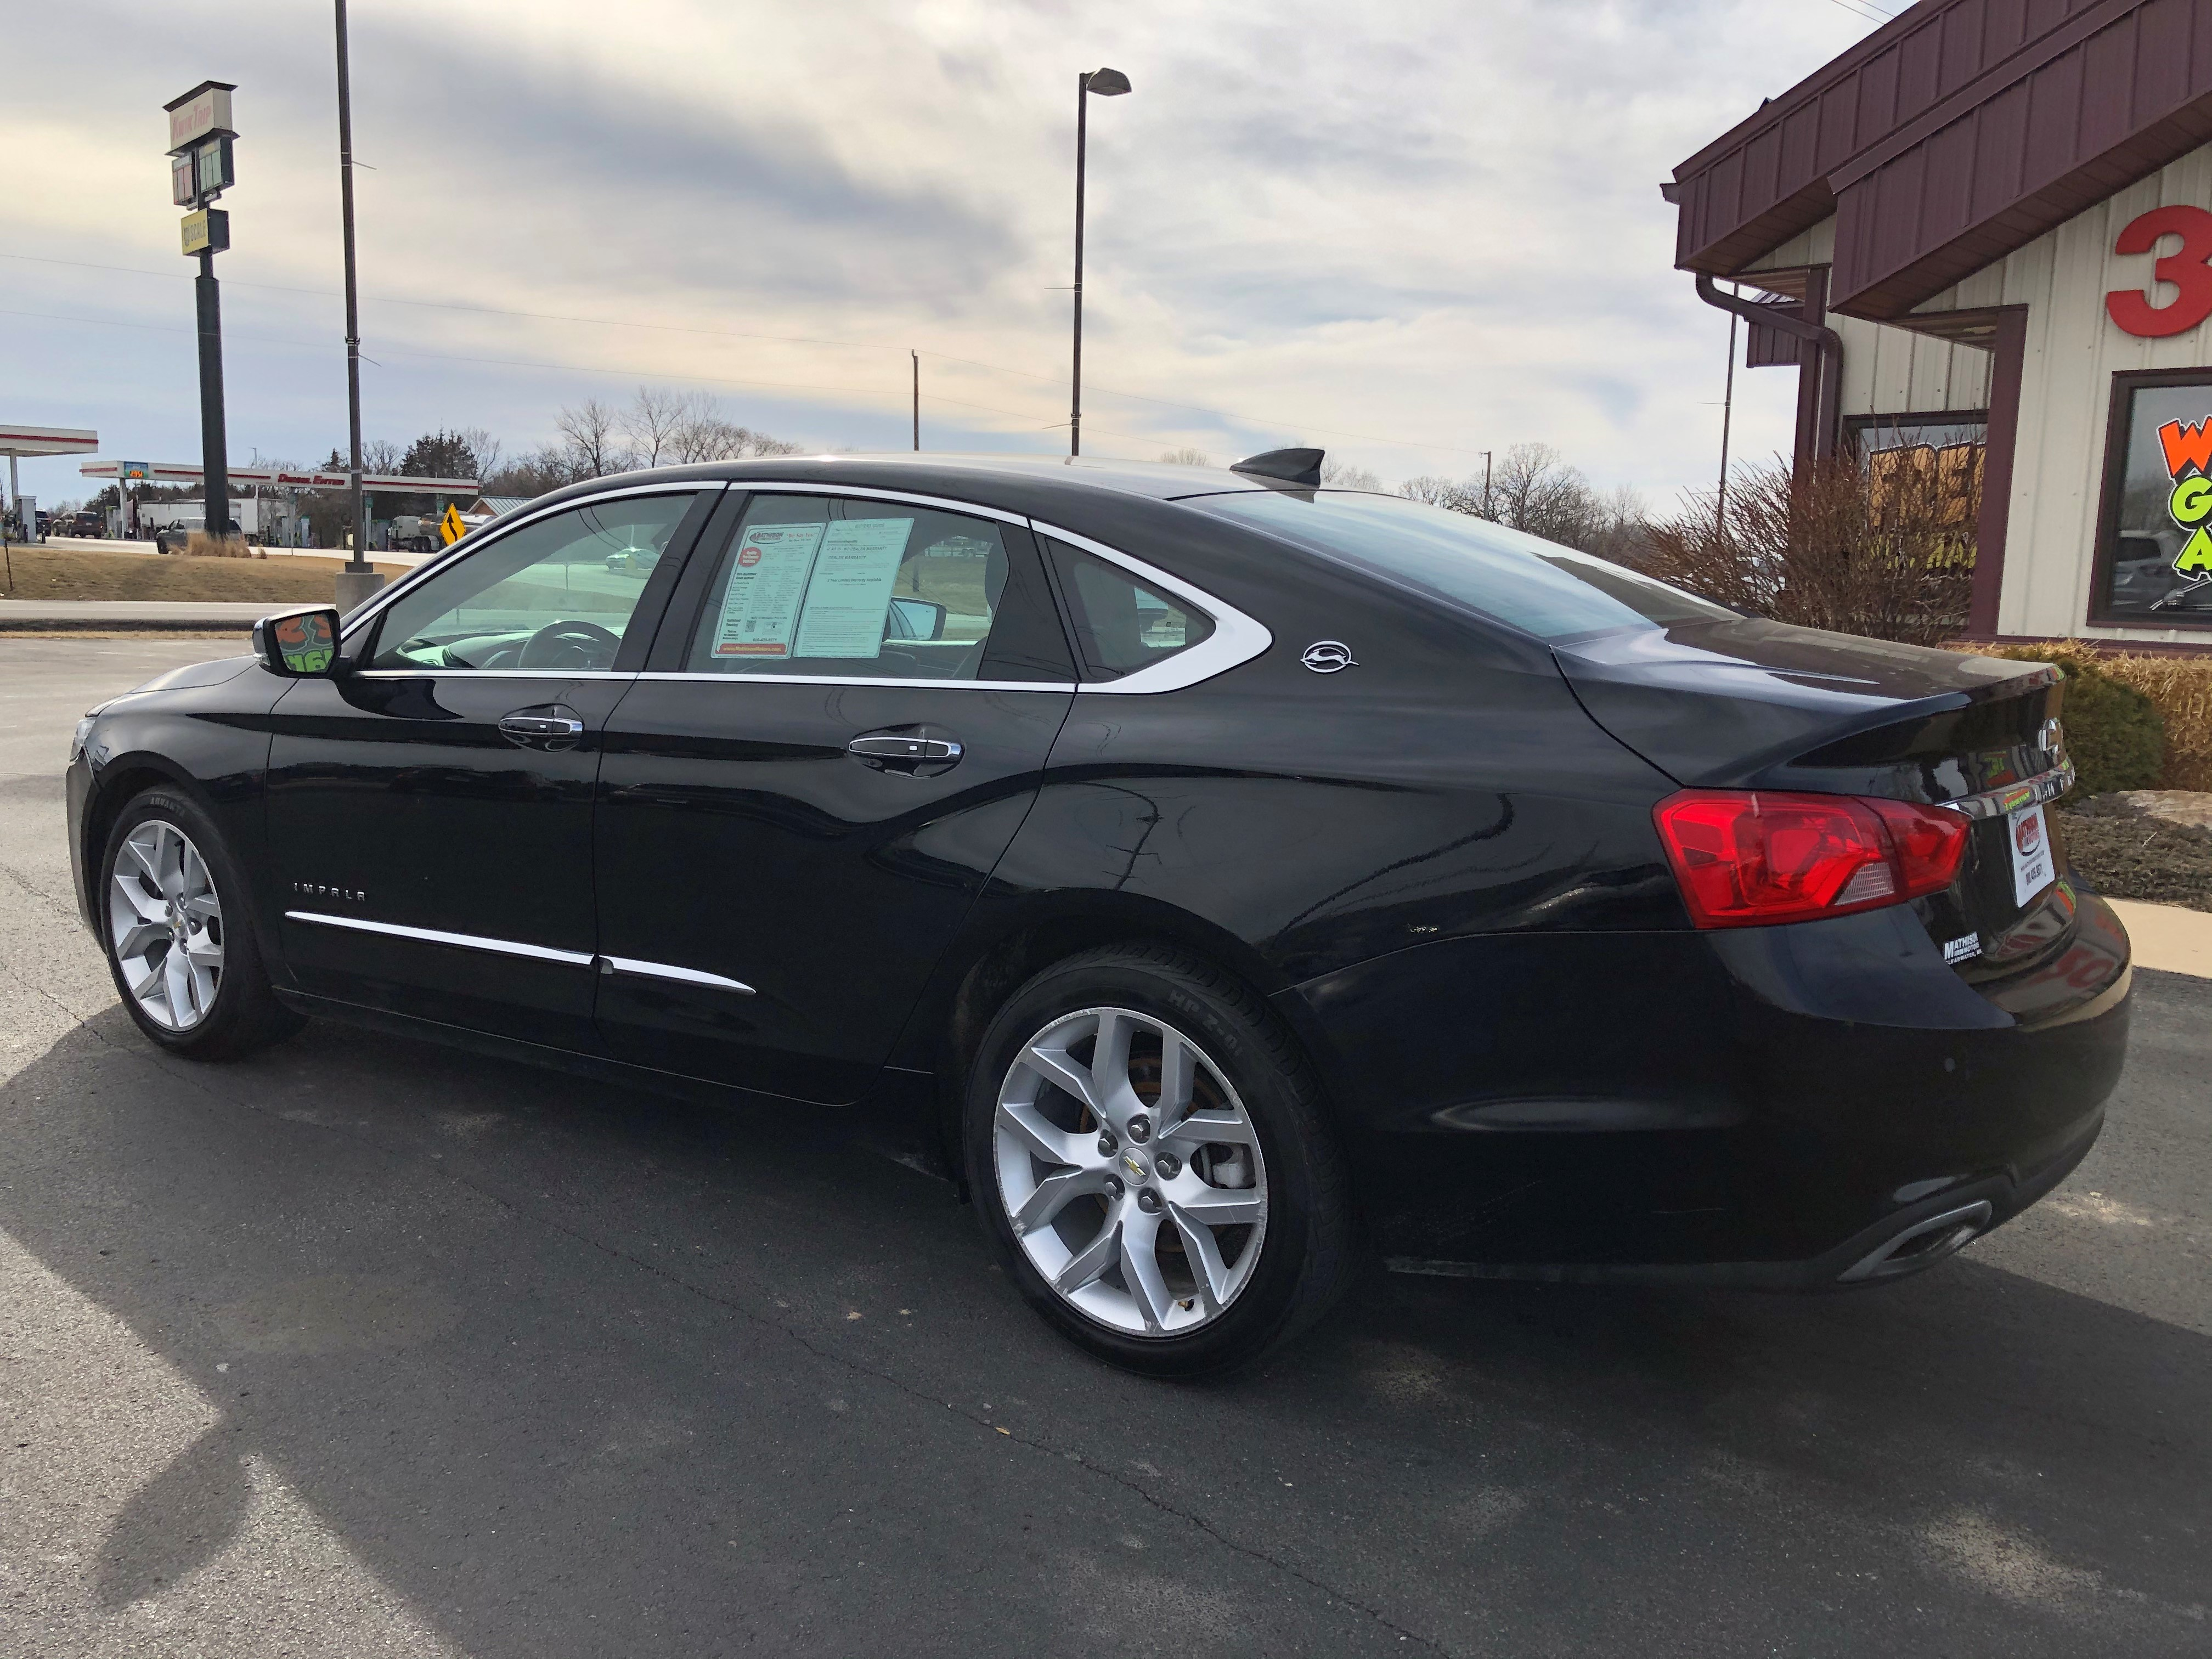 used vehicle - Sedan CHEVROLET IMPALA 2016